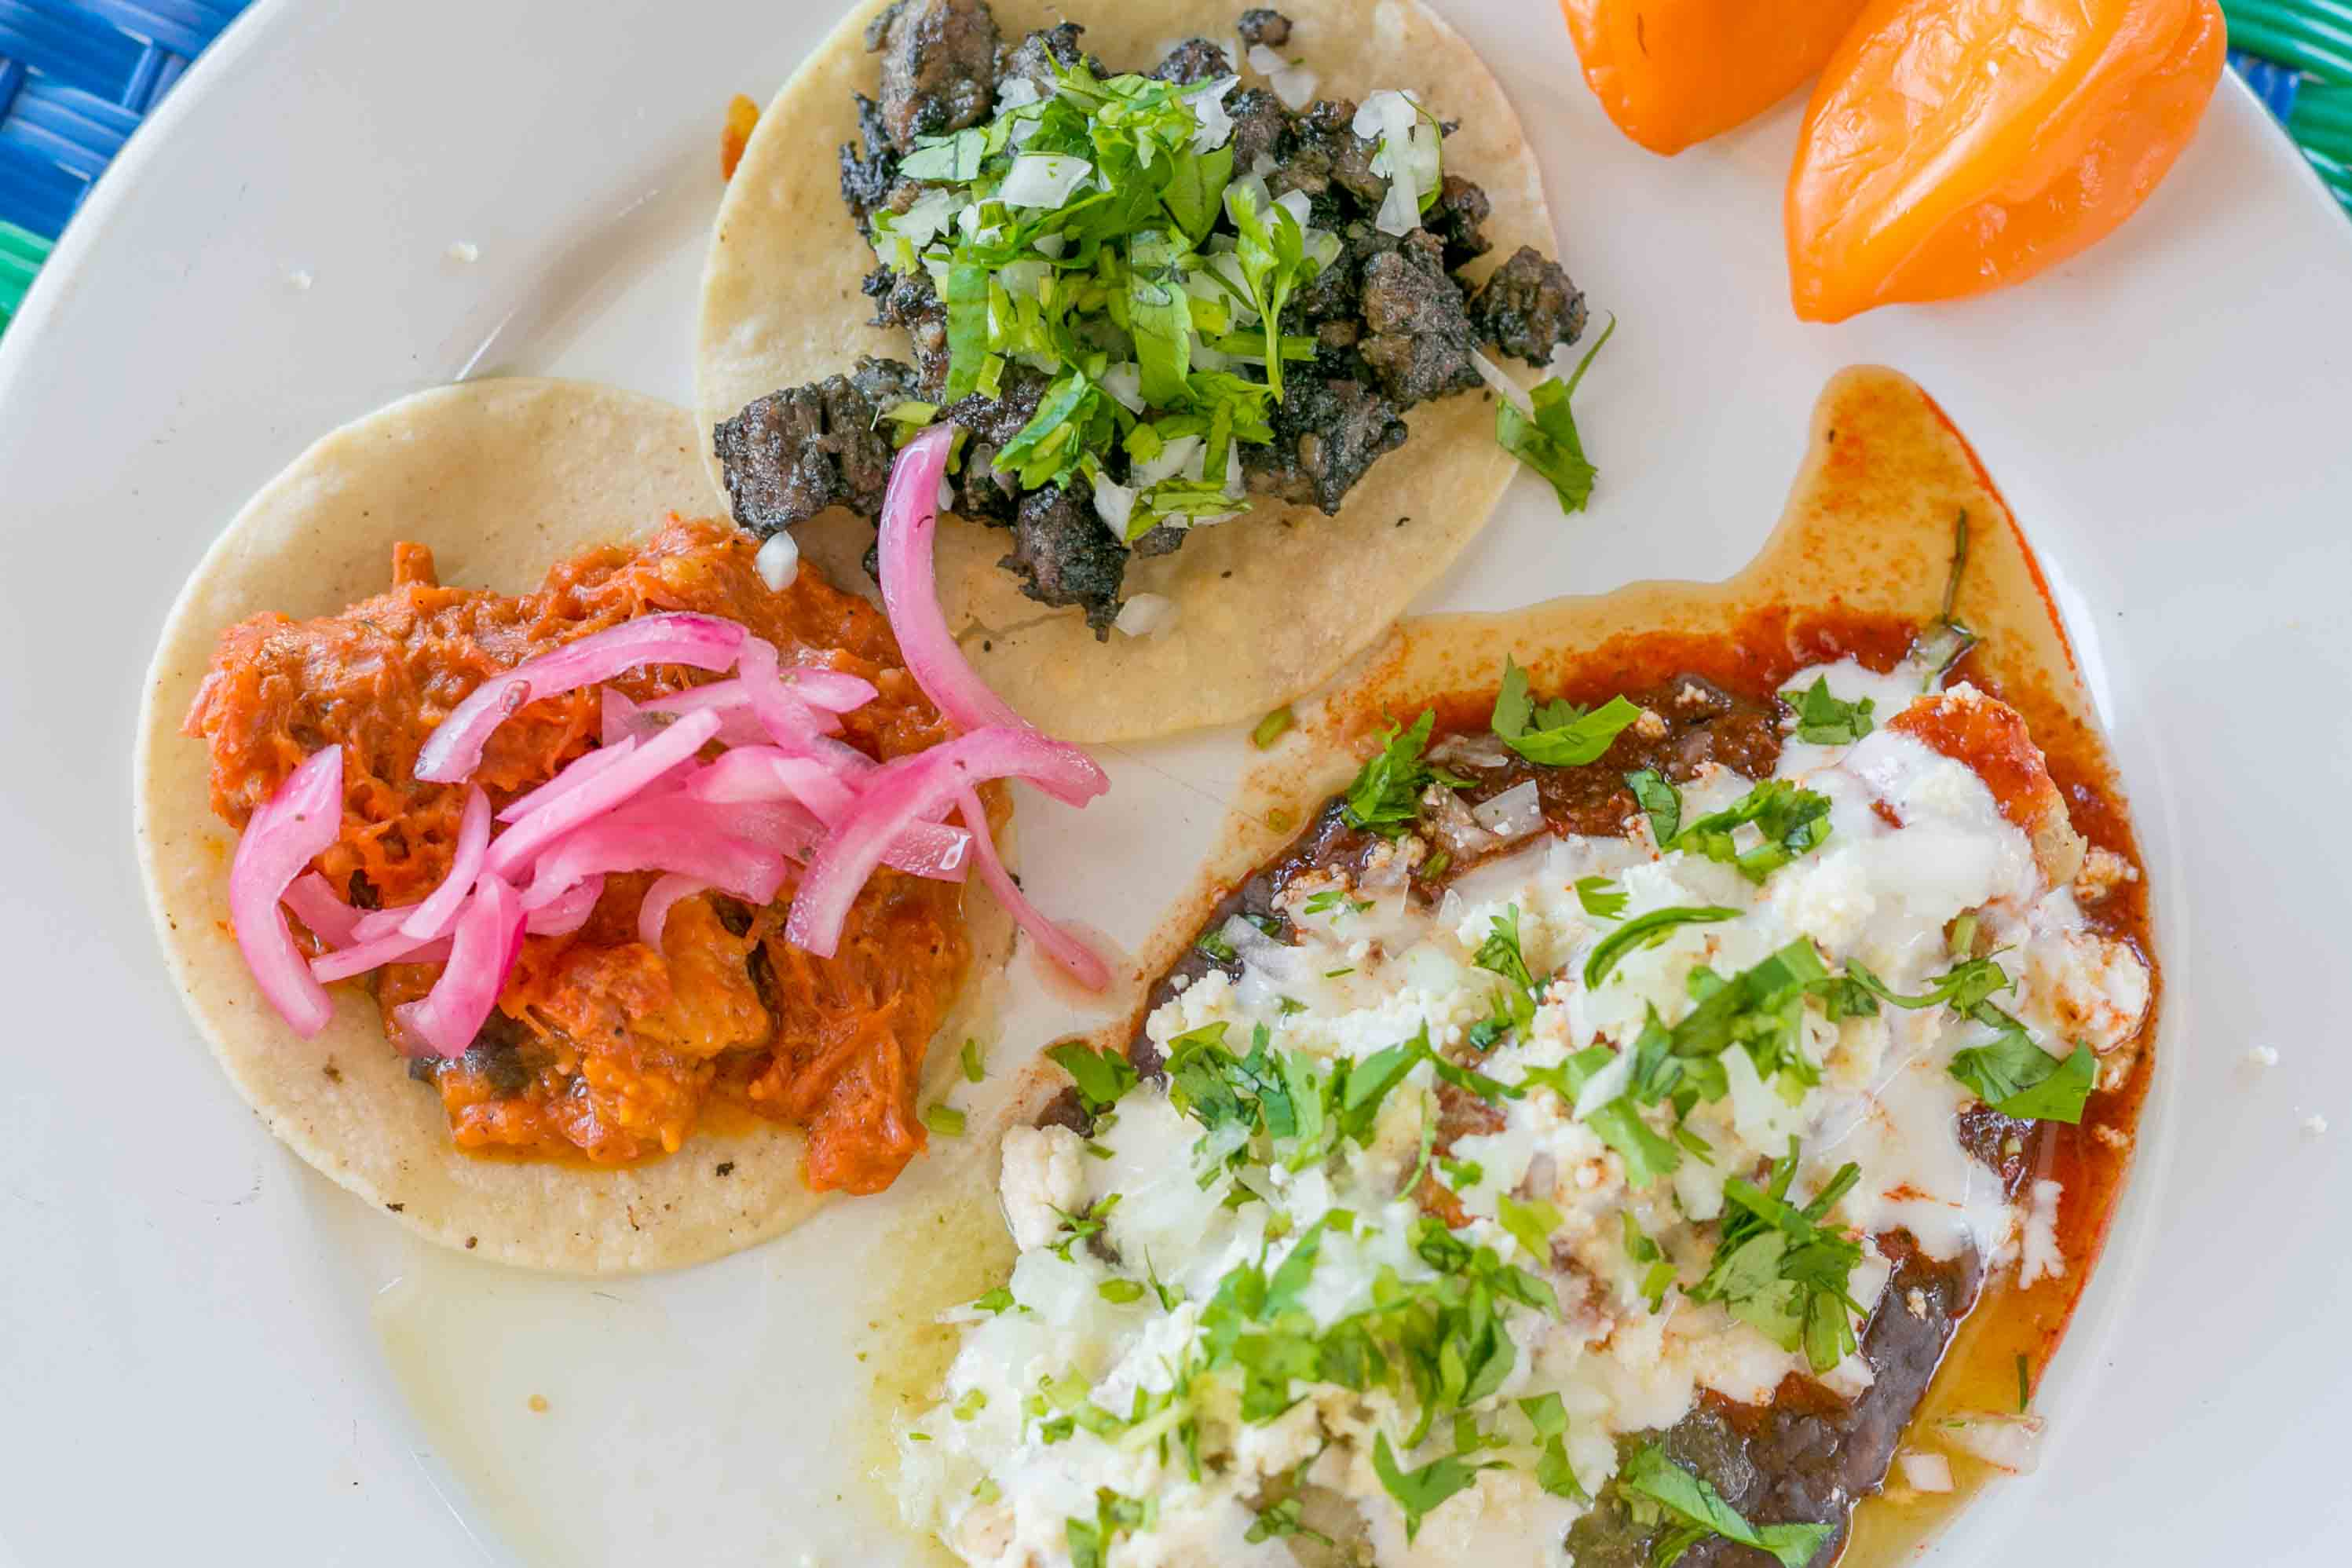 Food Tour in Puerto Vallarta Pitilla + Plate with a Cochinita Pibil Taco, Cochinita Pibil enchilada, and Pok Chuk Taco.